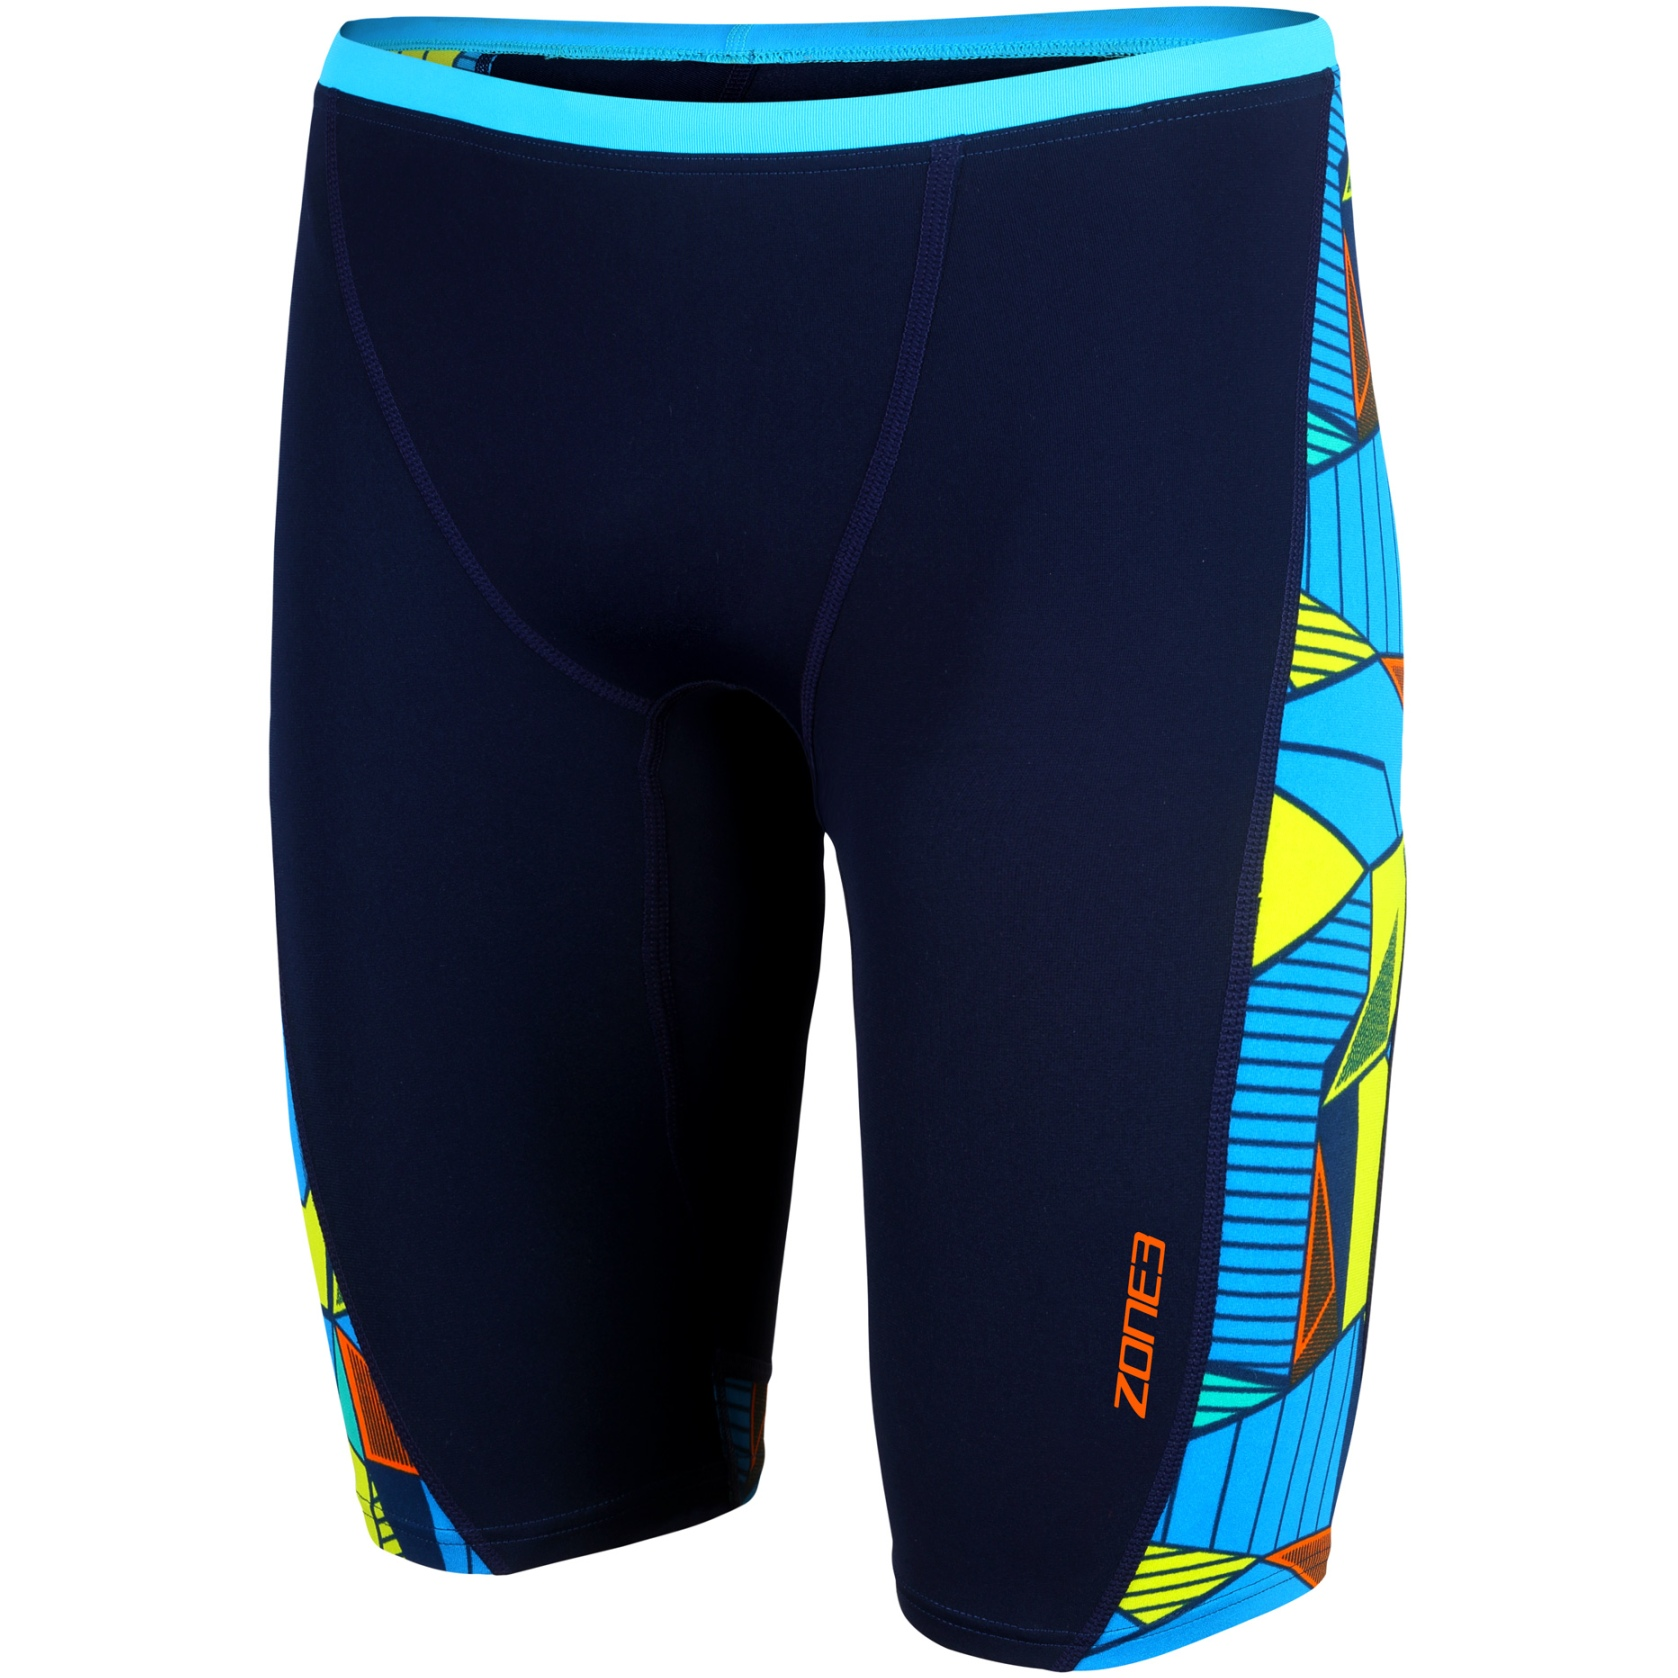 Zone3 Prism 2.0 Jammers Badehose - navy/yellow